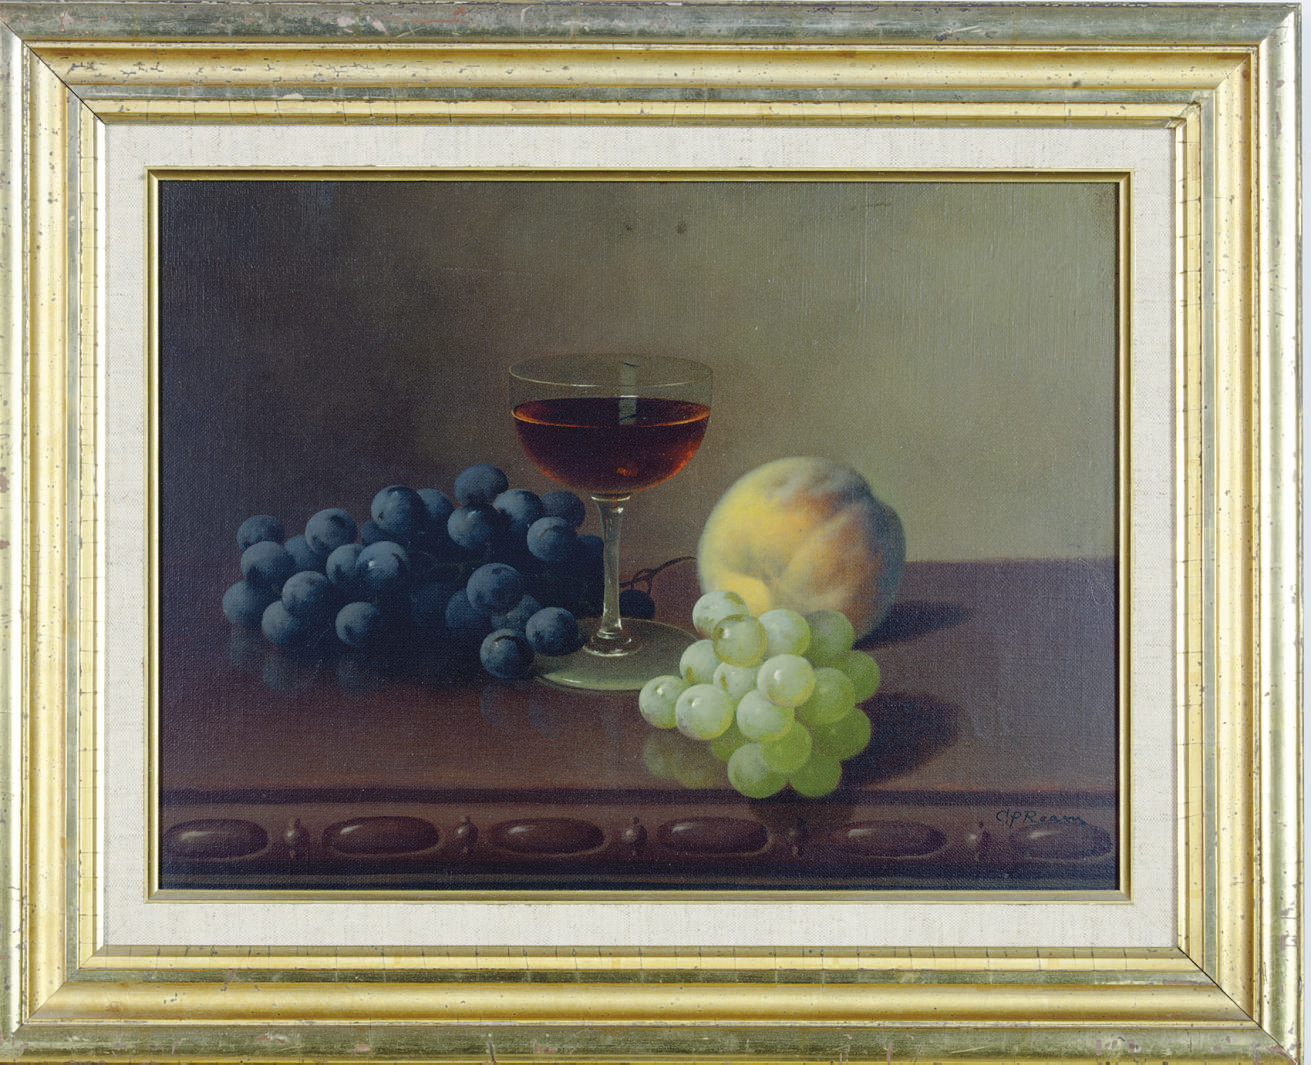 Still life with grapes, a peach and a glass of wine